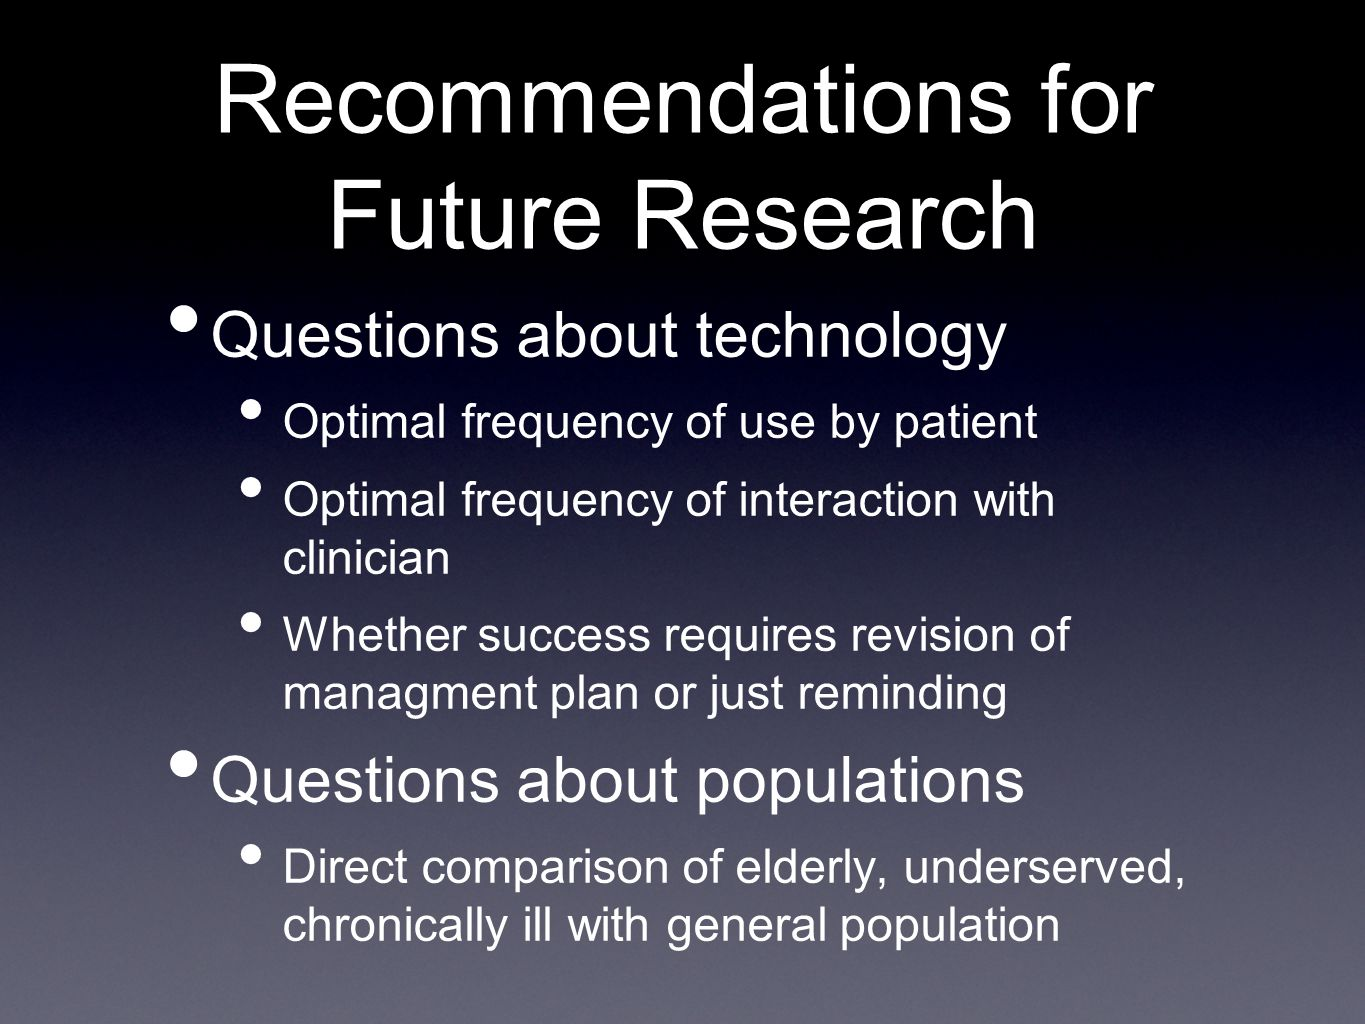 Questions about technology Optimal frequency of use by patient Optimal frequency of interaction with clinician Whether success requires revision of managment plan or just reminding Questions about populations Direct comparison of elderly, underserved, chronically ill with general population Recommendations for Future Research